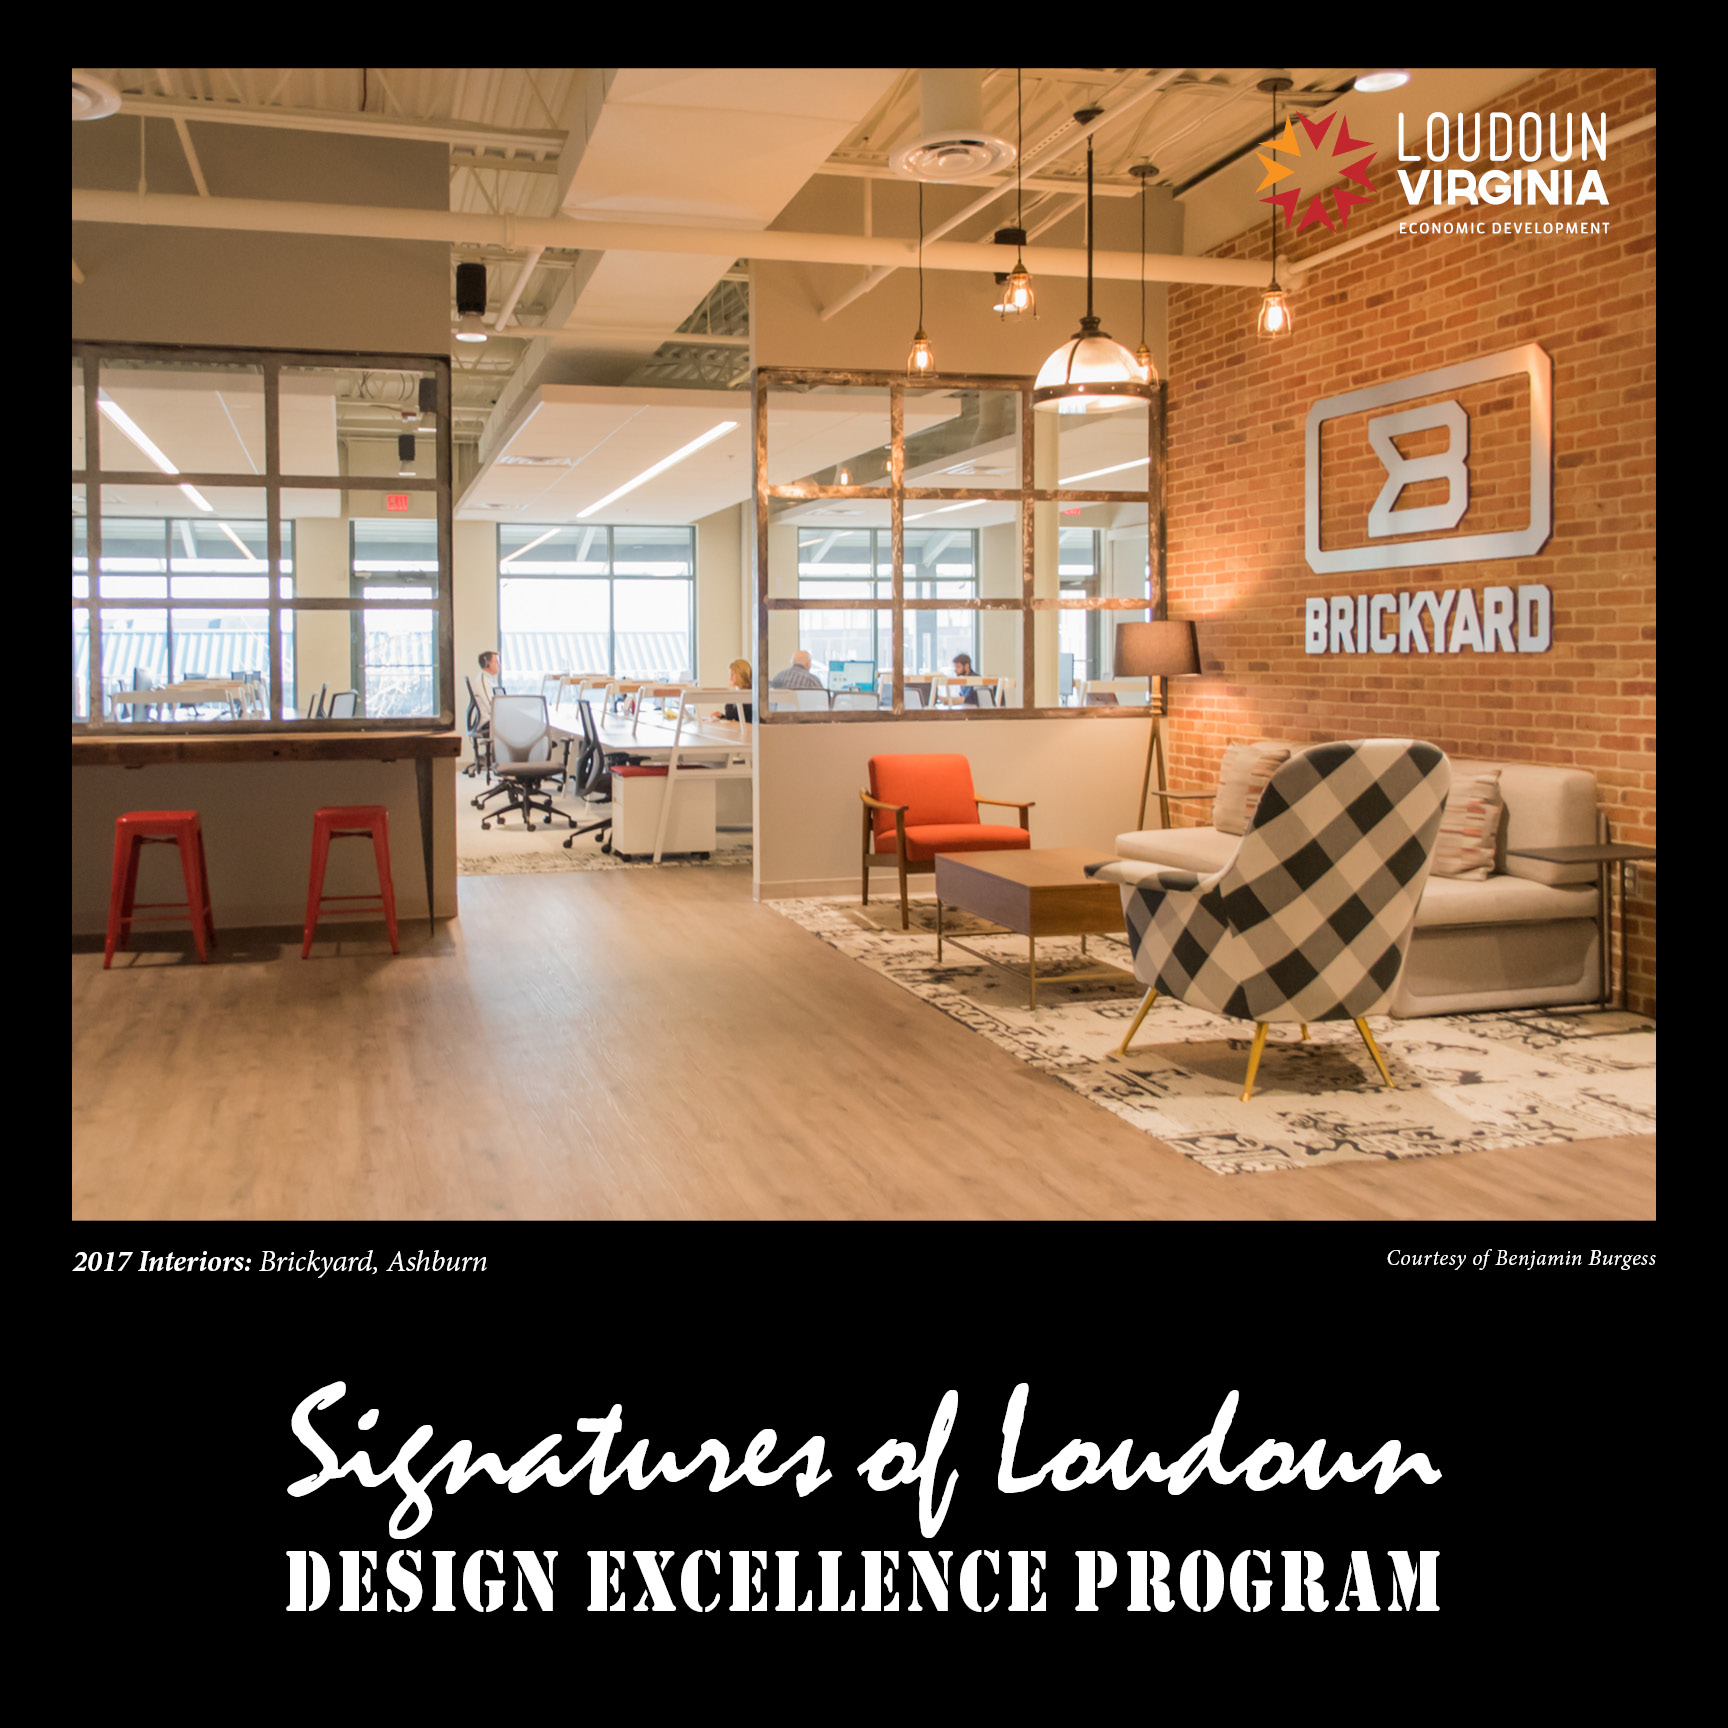 2017 Signatures of Loudoun Design Excellence Awards